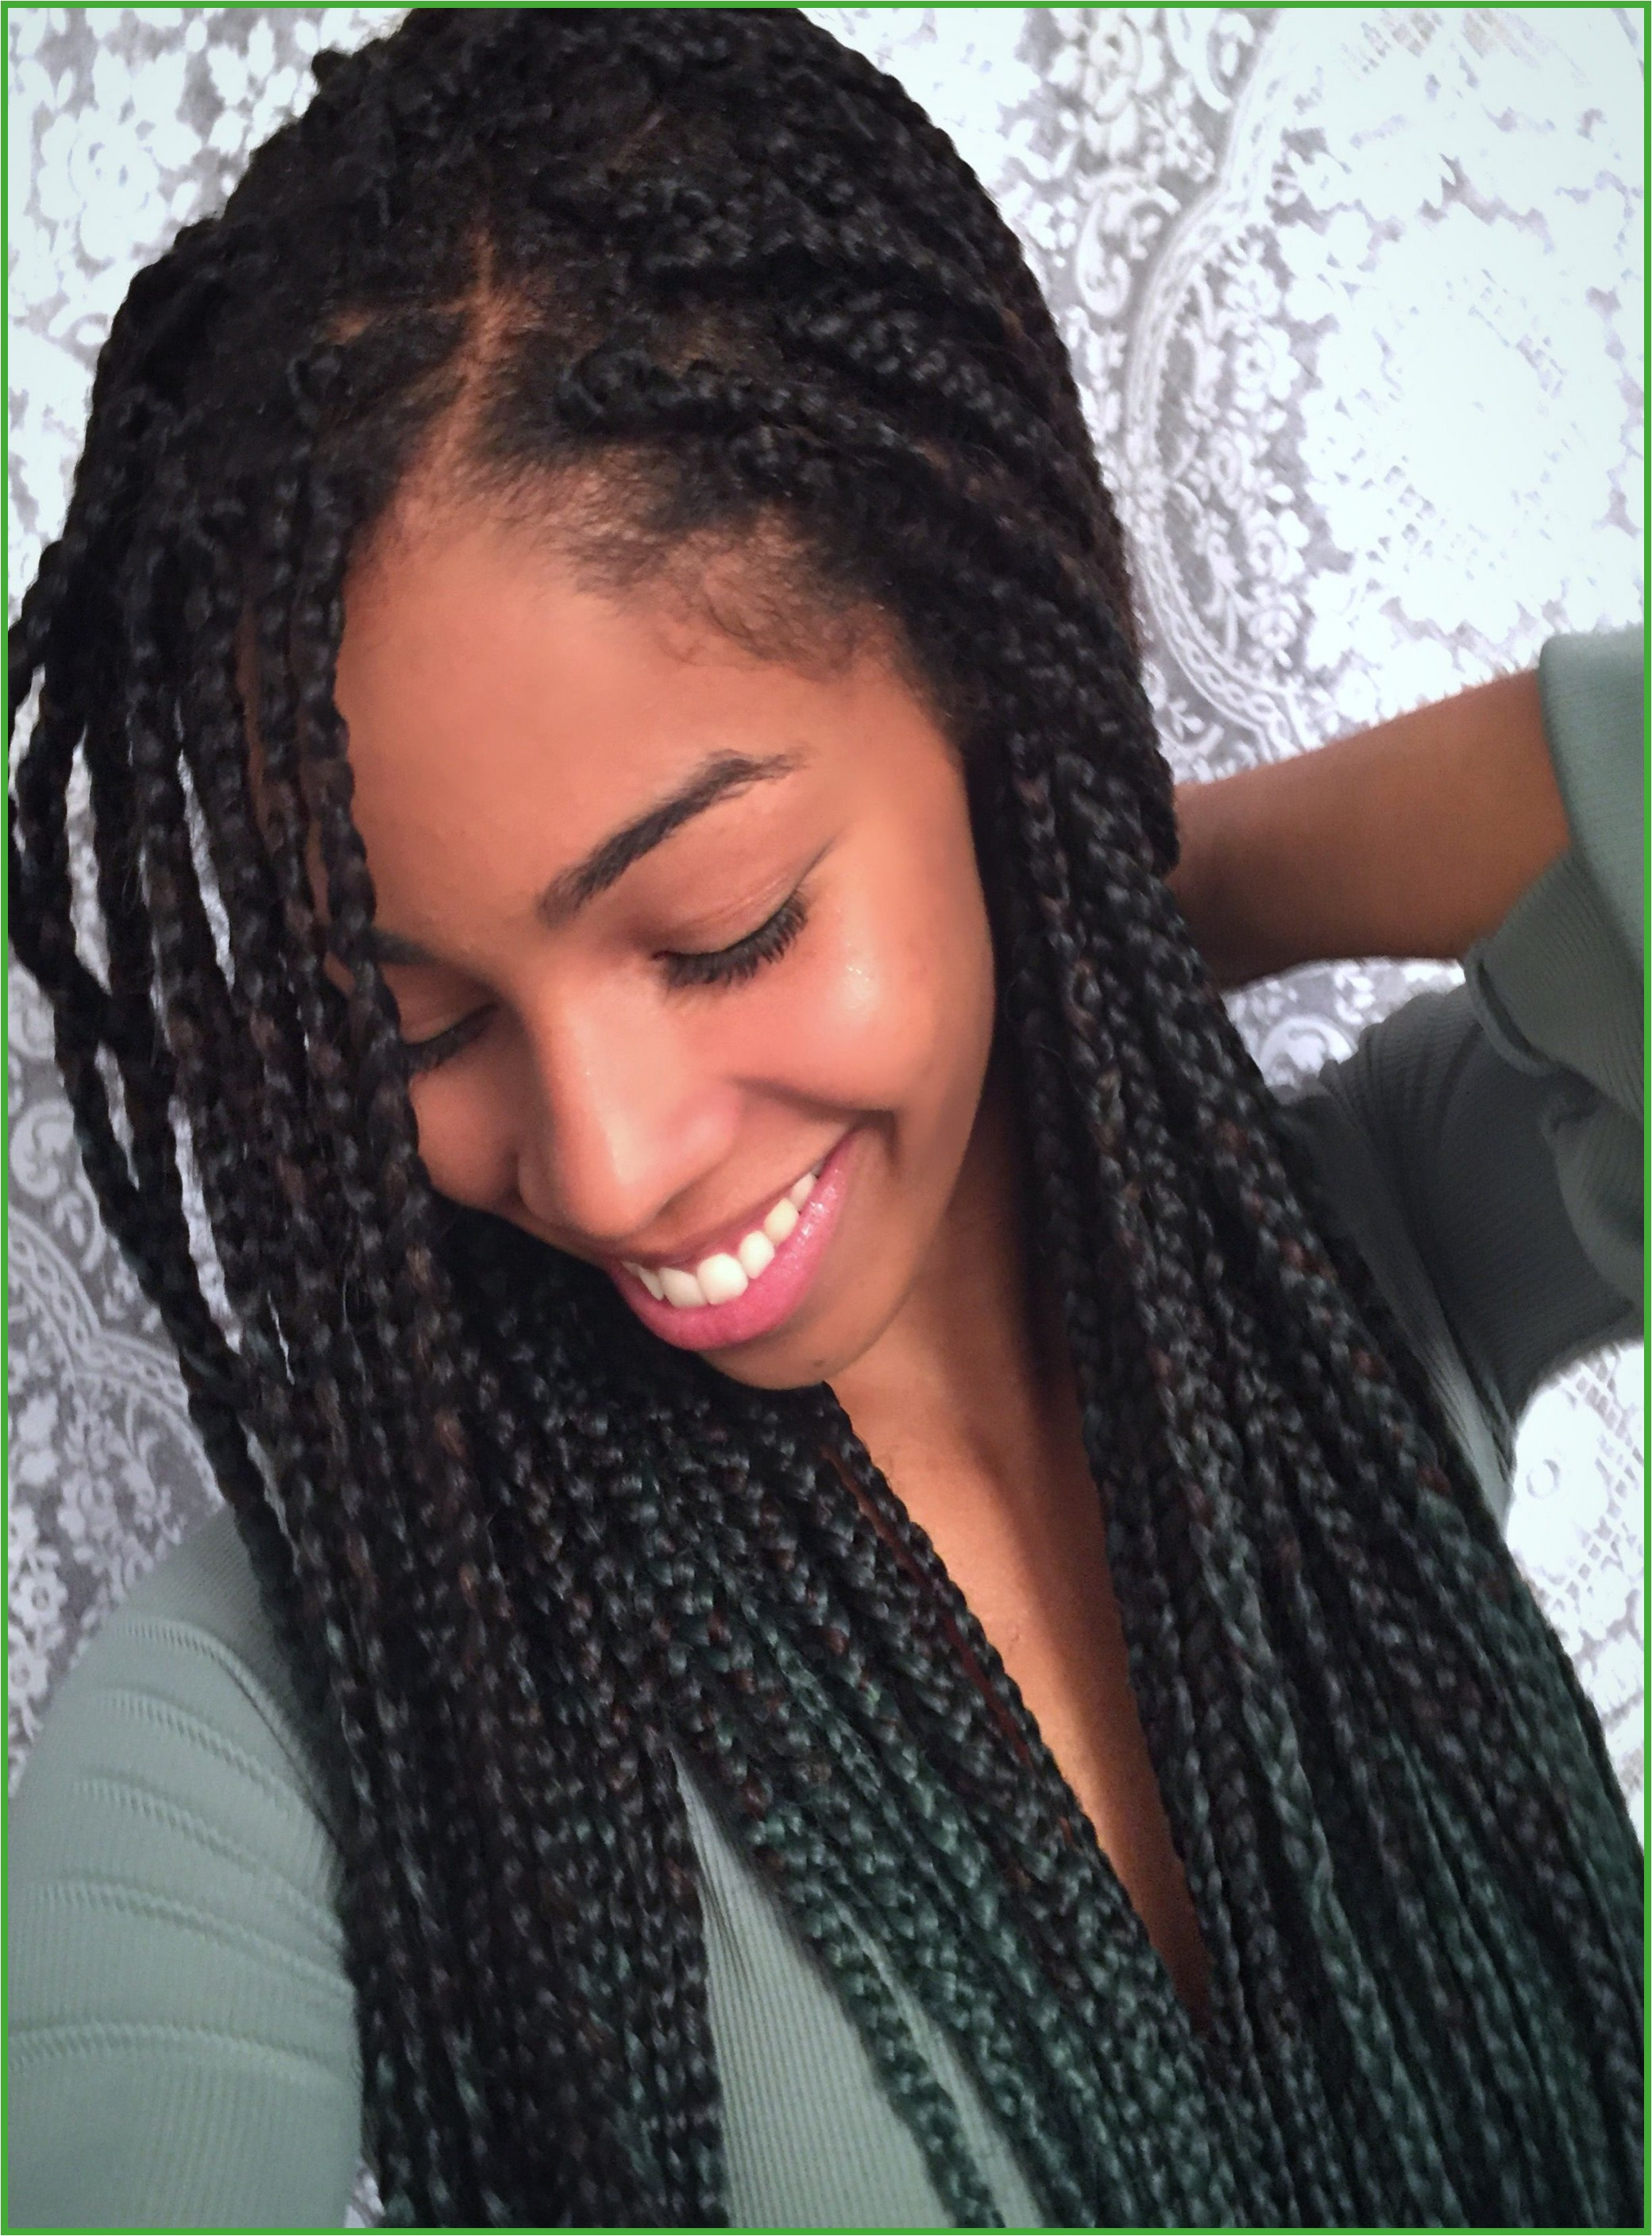 Long Braids Hairstyles Box Braid Inspiration Protective Styles for Natural Hair